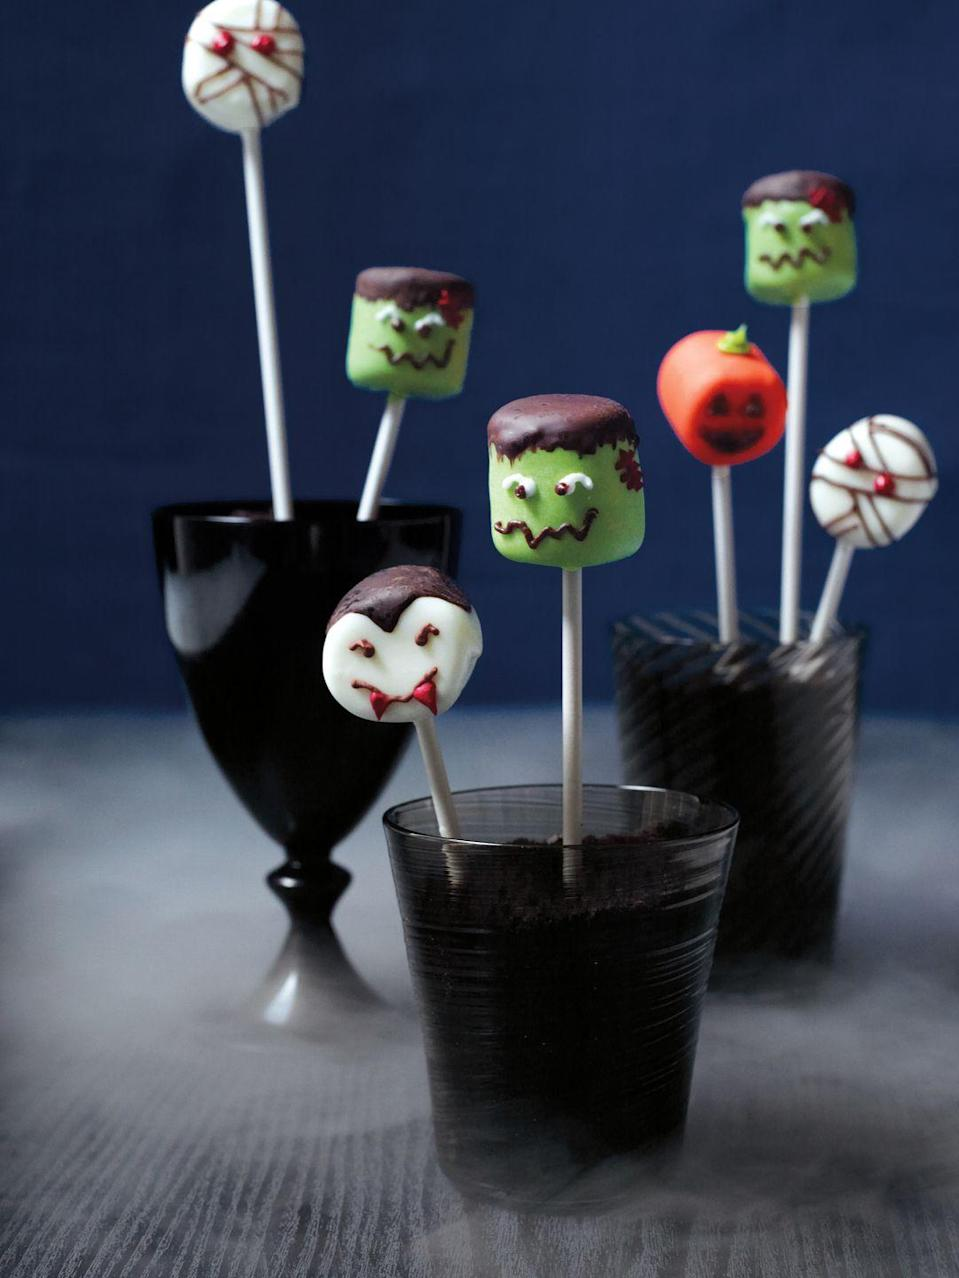 """<p>Allow your dessert to serve as a Halloween centerpiece. Graphic marshmallow monster pops, for instance, fit the bill. </p><p><a class=""""link rapid-noclick-resp"""" href=""""https://www.amazon.com/Puffed-Marshmallows-16-Ounce-Bags-Pack/dp/B002UL1K38/?tag=syn-yahoo-20&ascsubtag=%5Bartid%7C10055.g.33437890%5Bsrc%7Cyahoo-us"""" rel=""""nofollow noopener"""" target=""""_blank"""" data-ylk=""""slk:SHOP MARSHMALLOWS"""">SHOP MARSHMALLOWS</a></p>"""